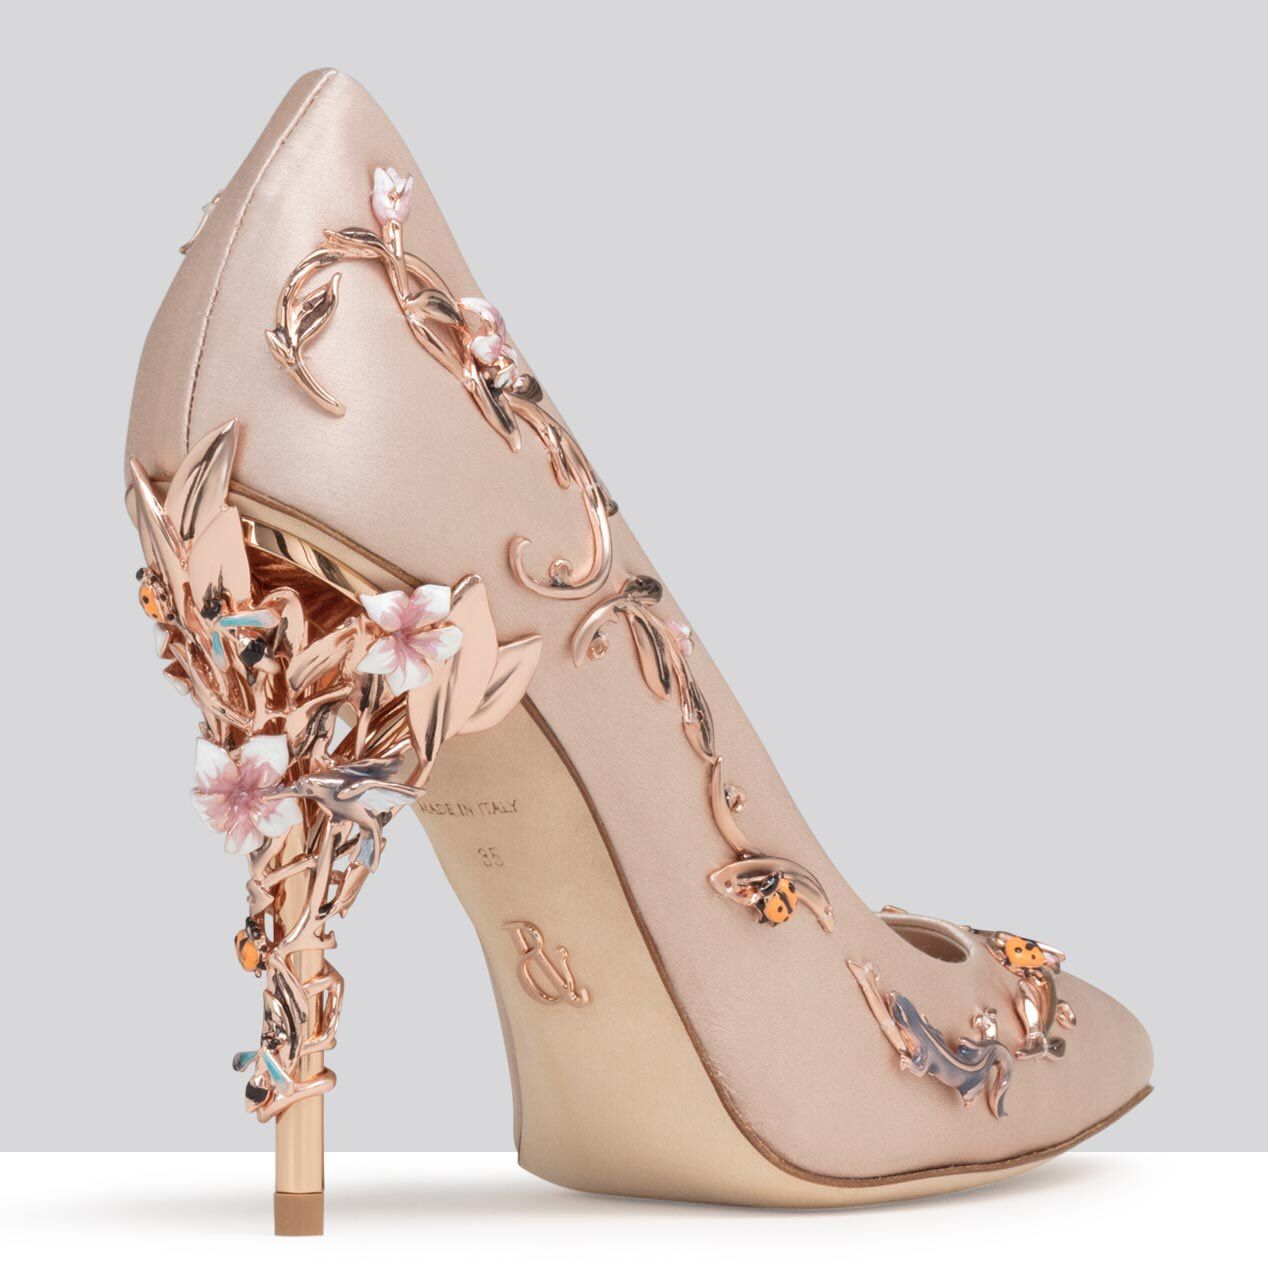 cfe09f6c792 Glamour Goals on in 2019 | fashion | Rose gold shoes, Pink wedding ...